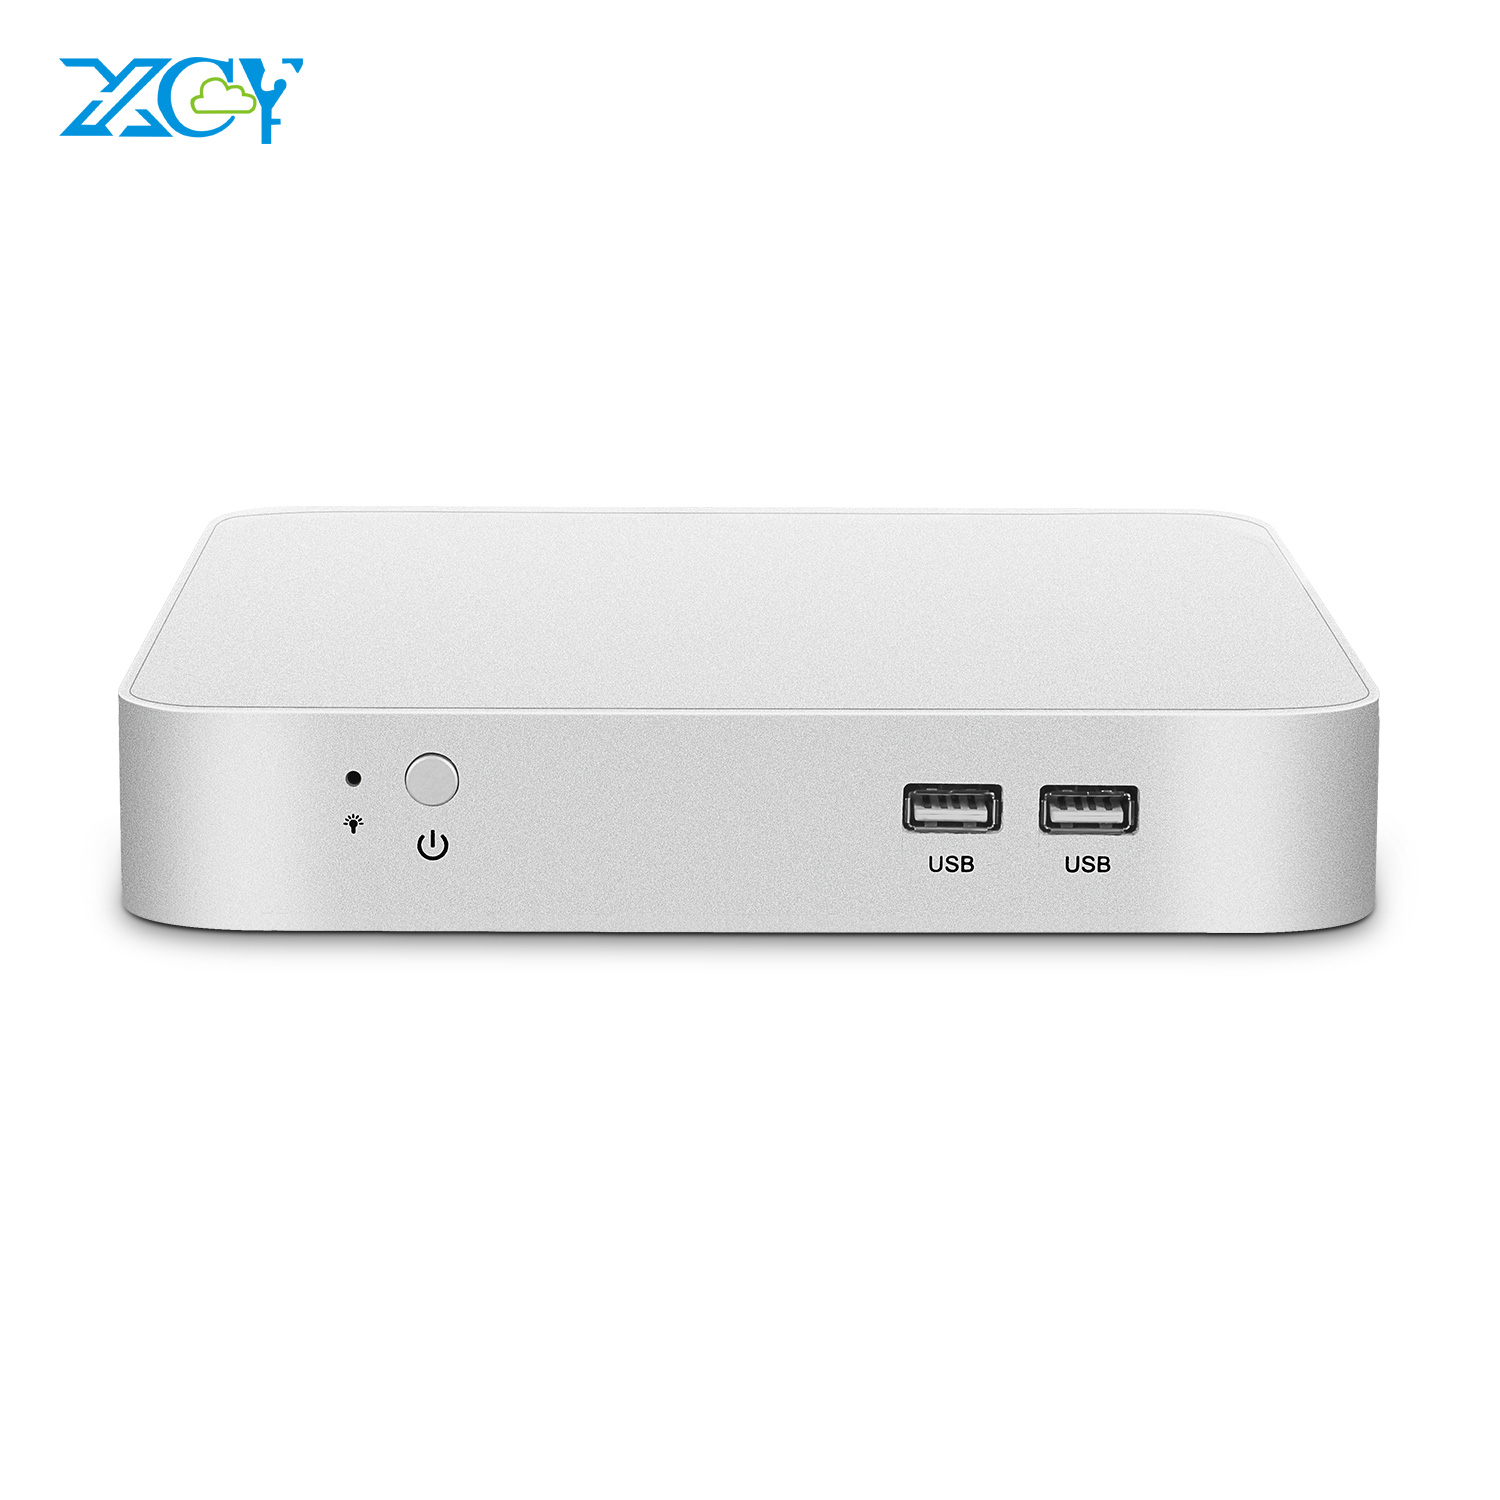 XCY Mini PC Intel Celeron J1900 Quad-Core Windows 10 Nettop HDMI VGA 6xUSB WiFi Gigabit Ethernet Office Micro Desktop Computer